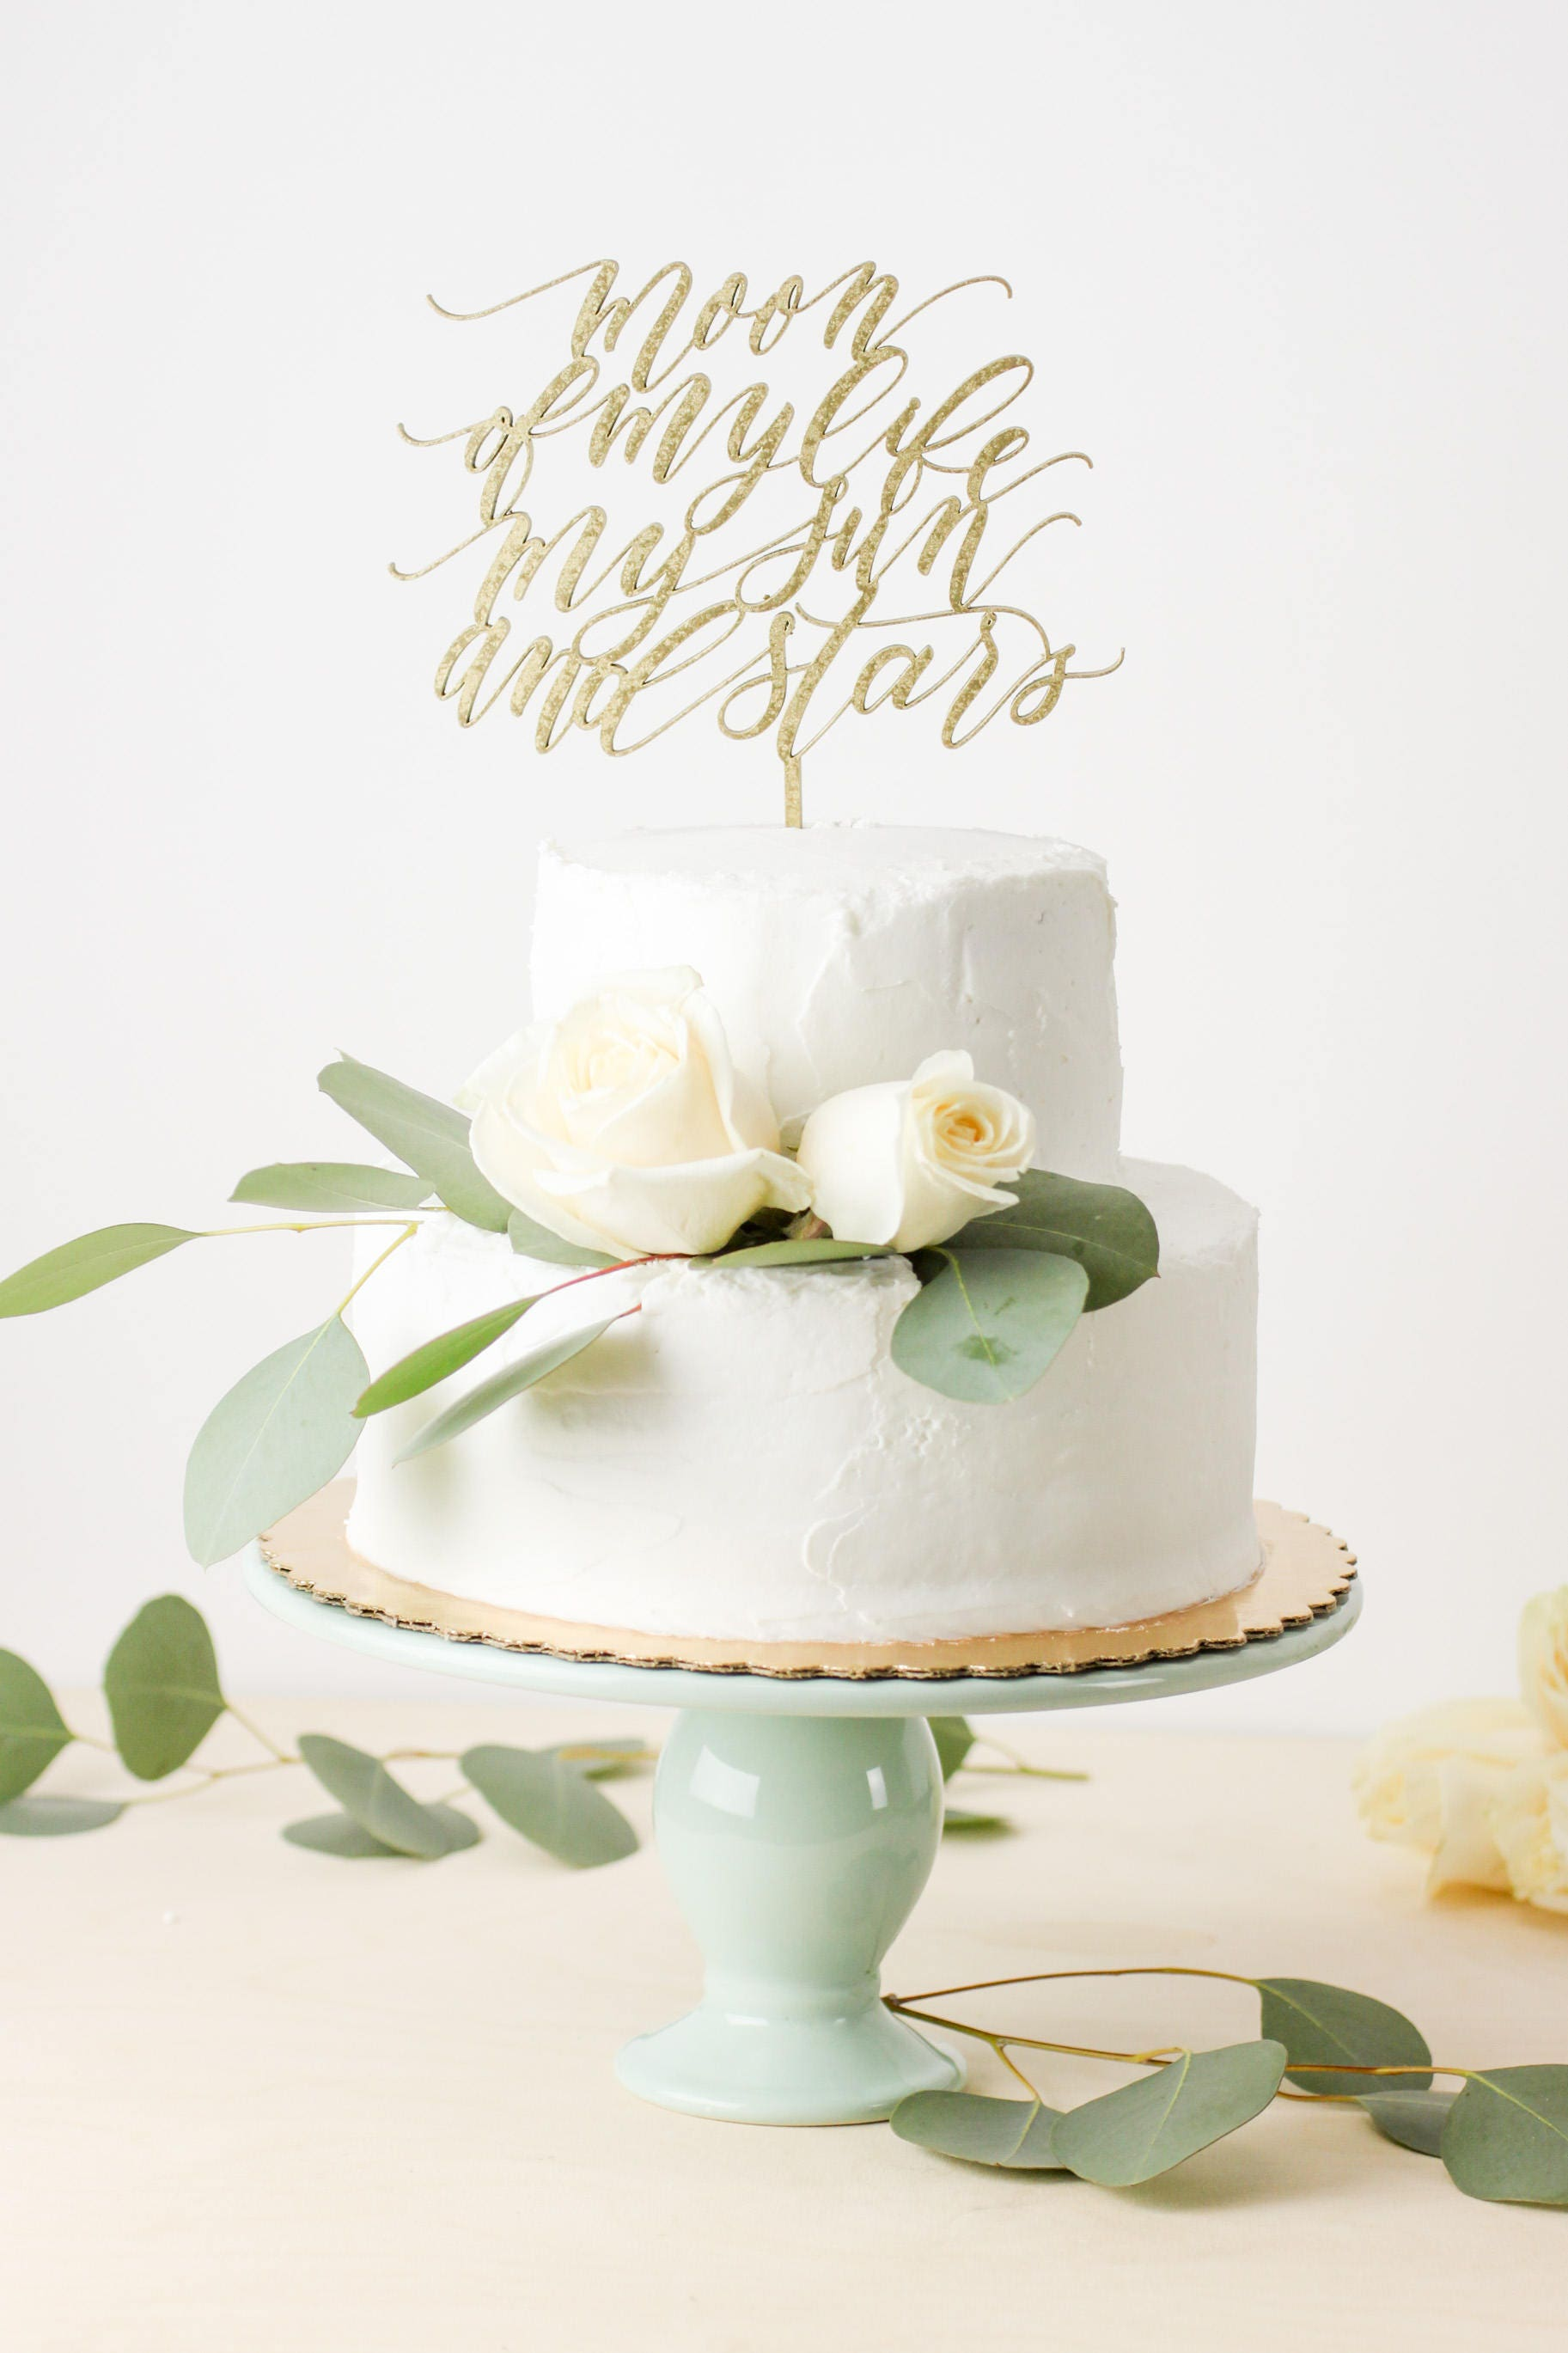 Enchanting Wedding Cakes Kc Pictures - Wedding Idea 2018 ...